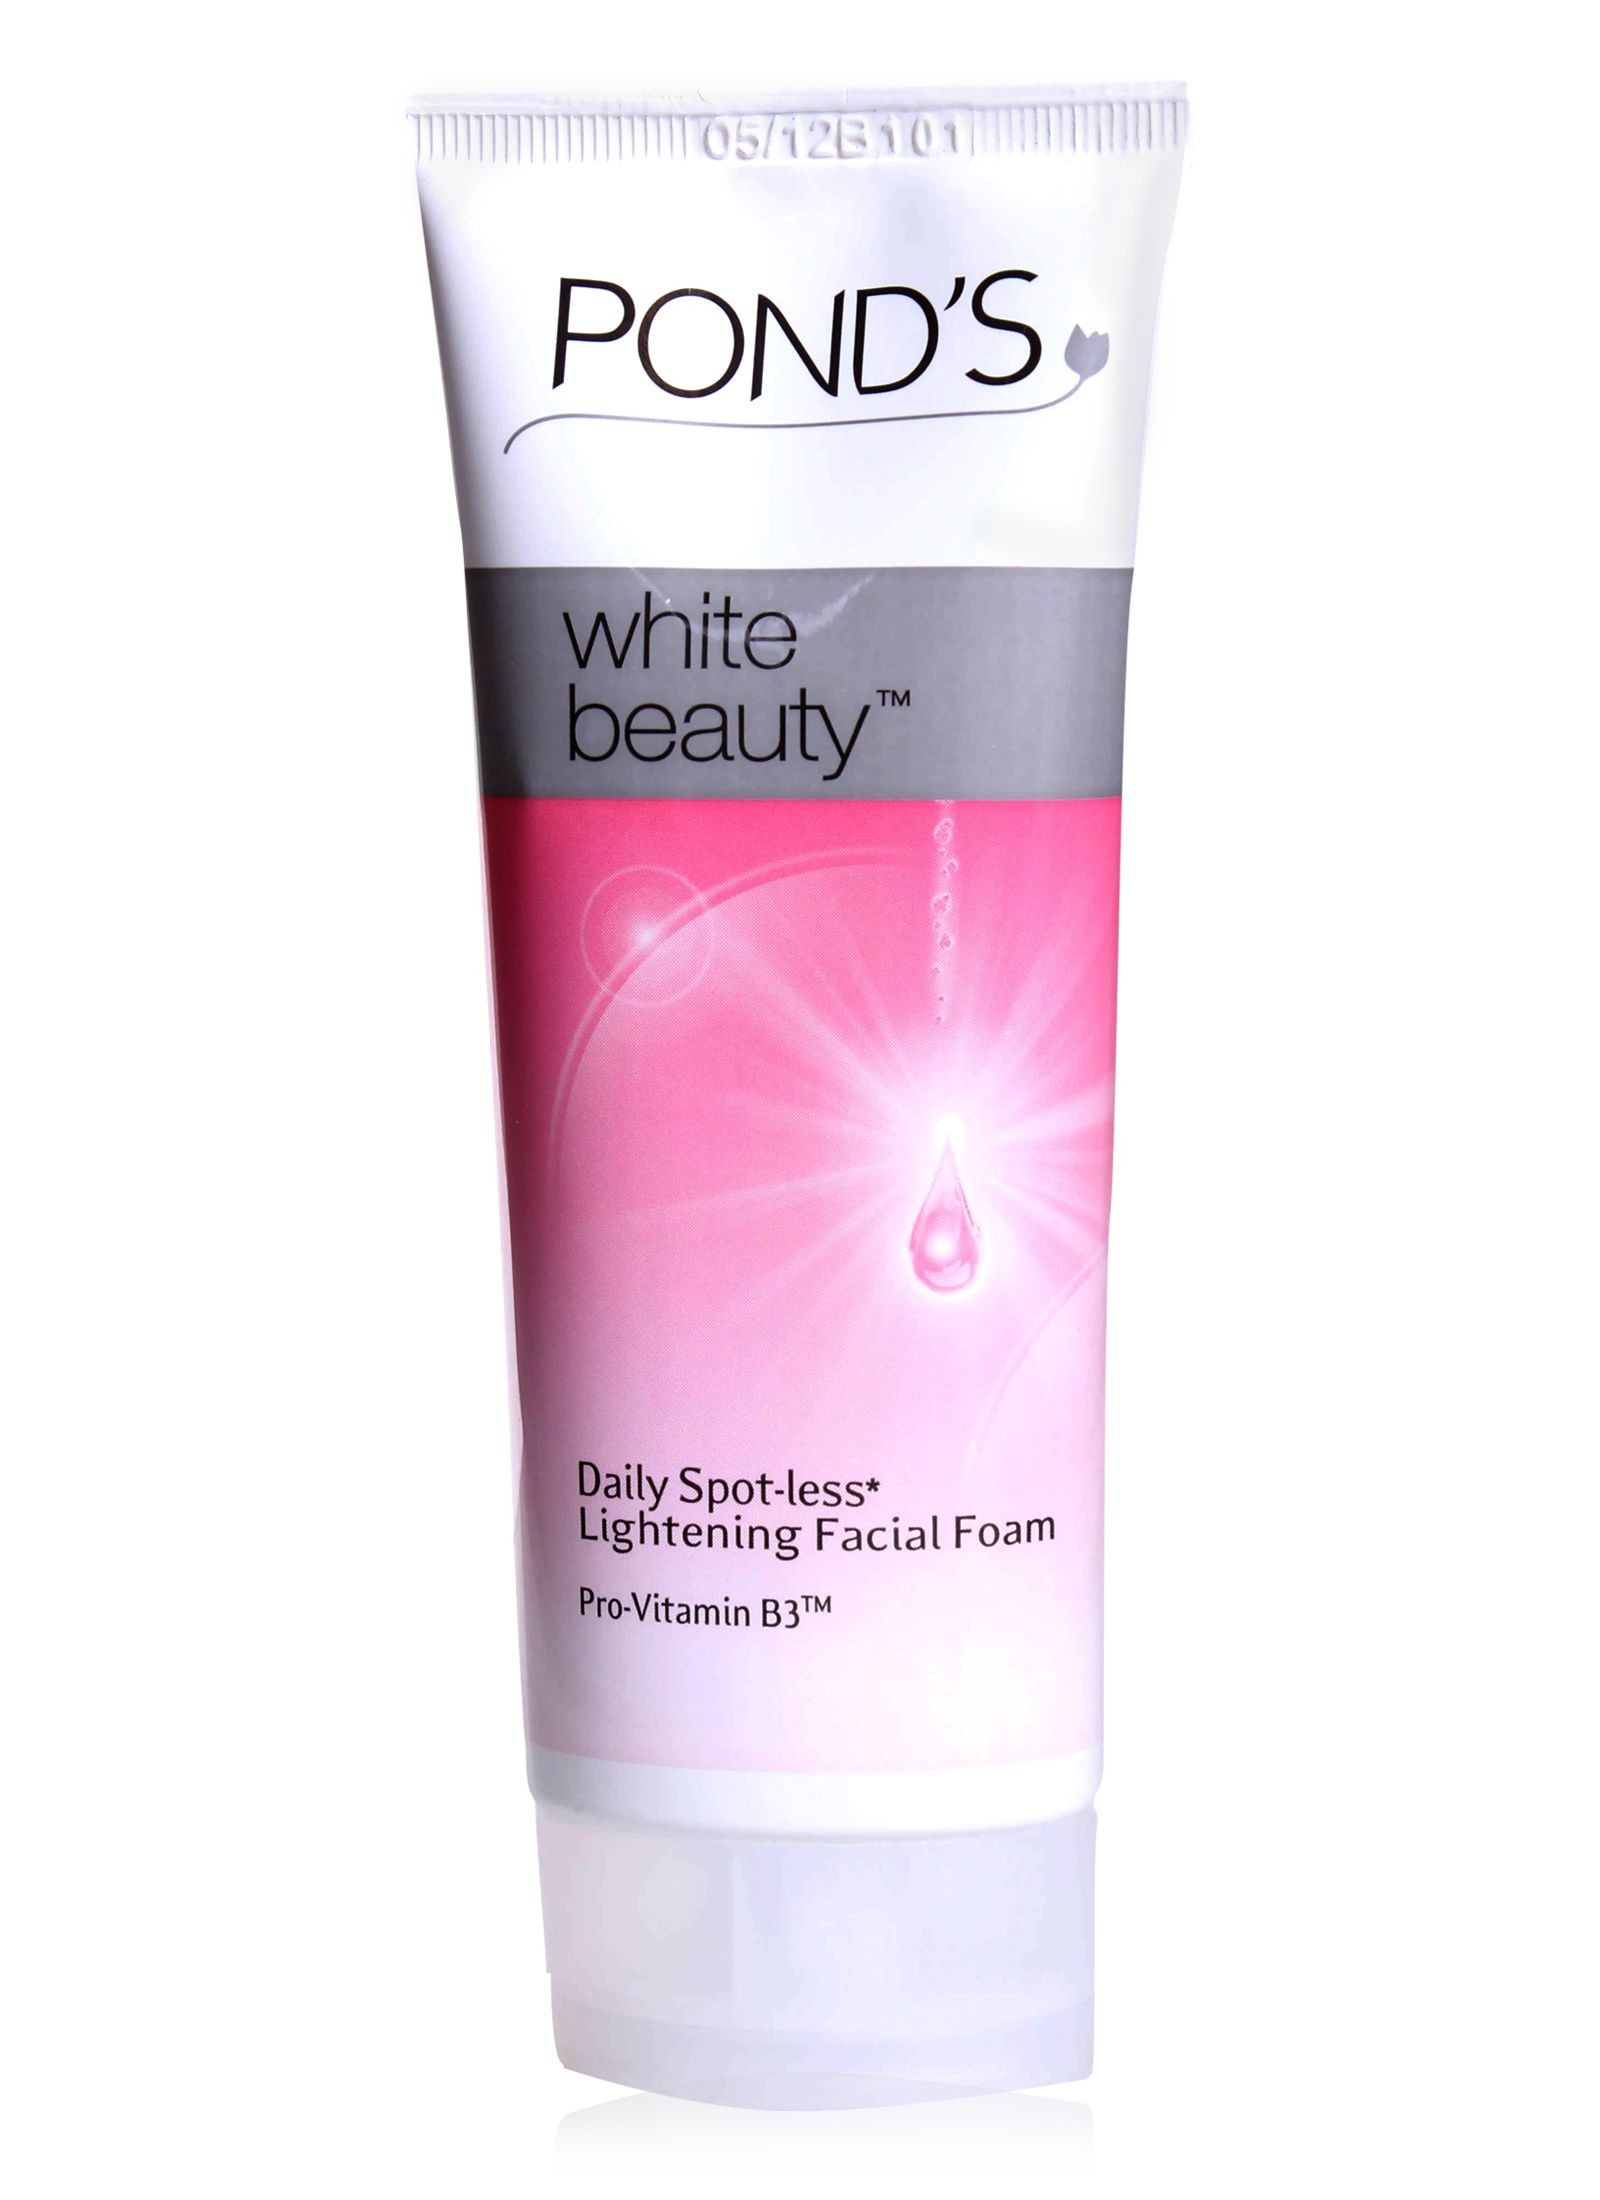 Pond's - White Beauty Facial Foam 20 gm Pack